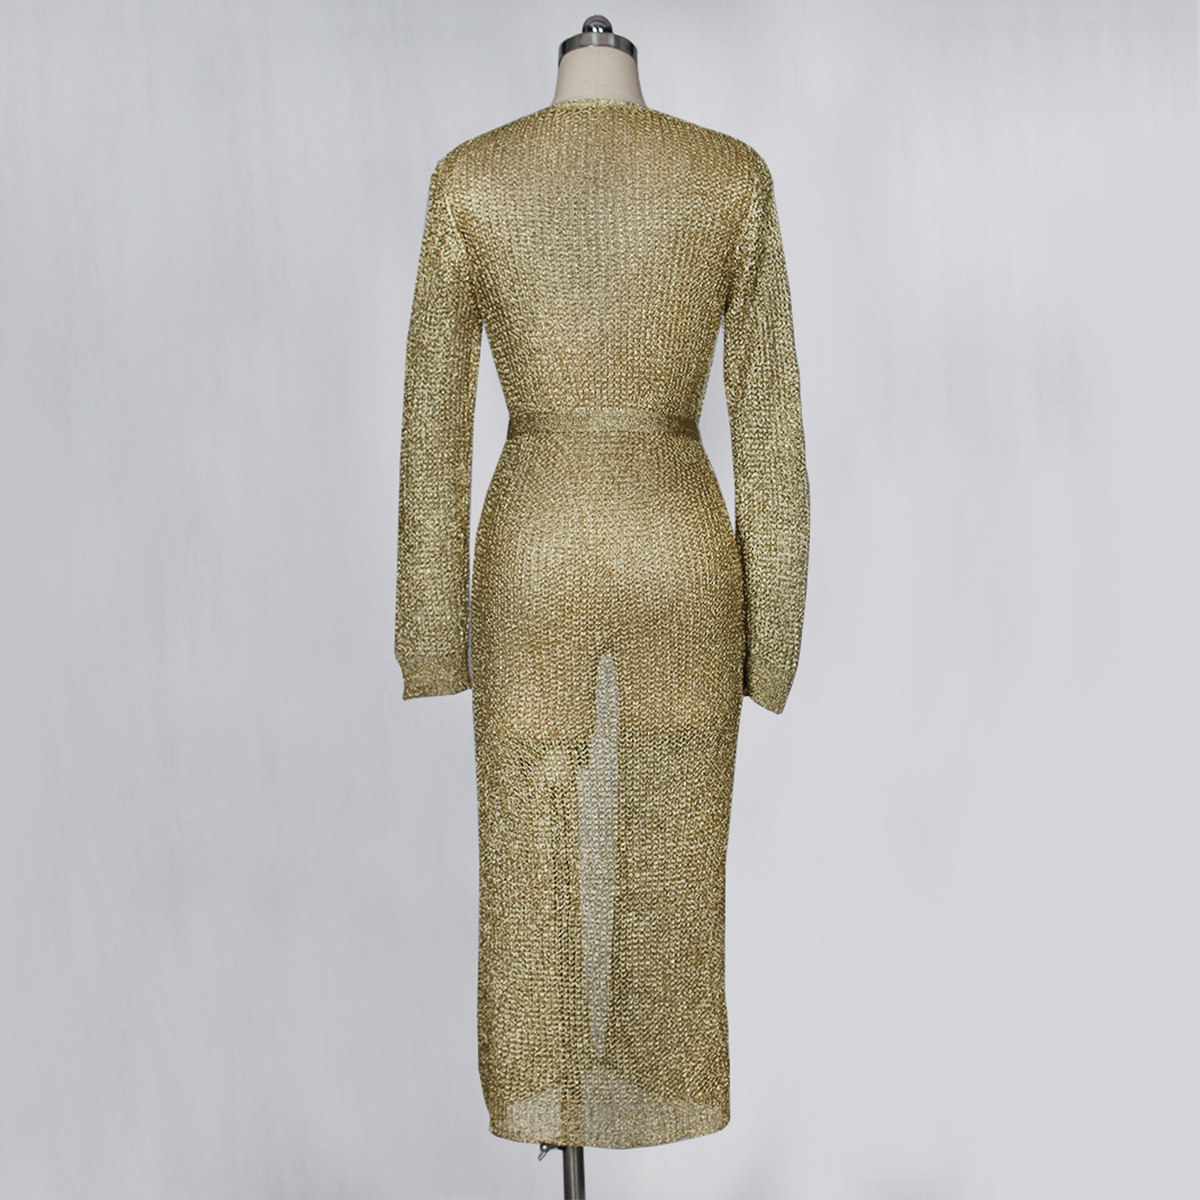 Z020 Hot selling gold knitted sweater outerwear sexy hollow out cardigan long dress